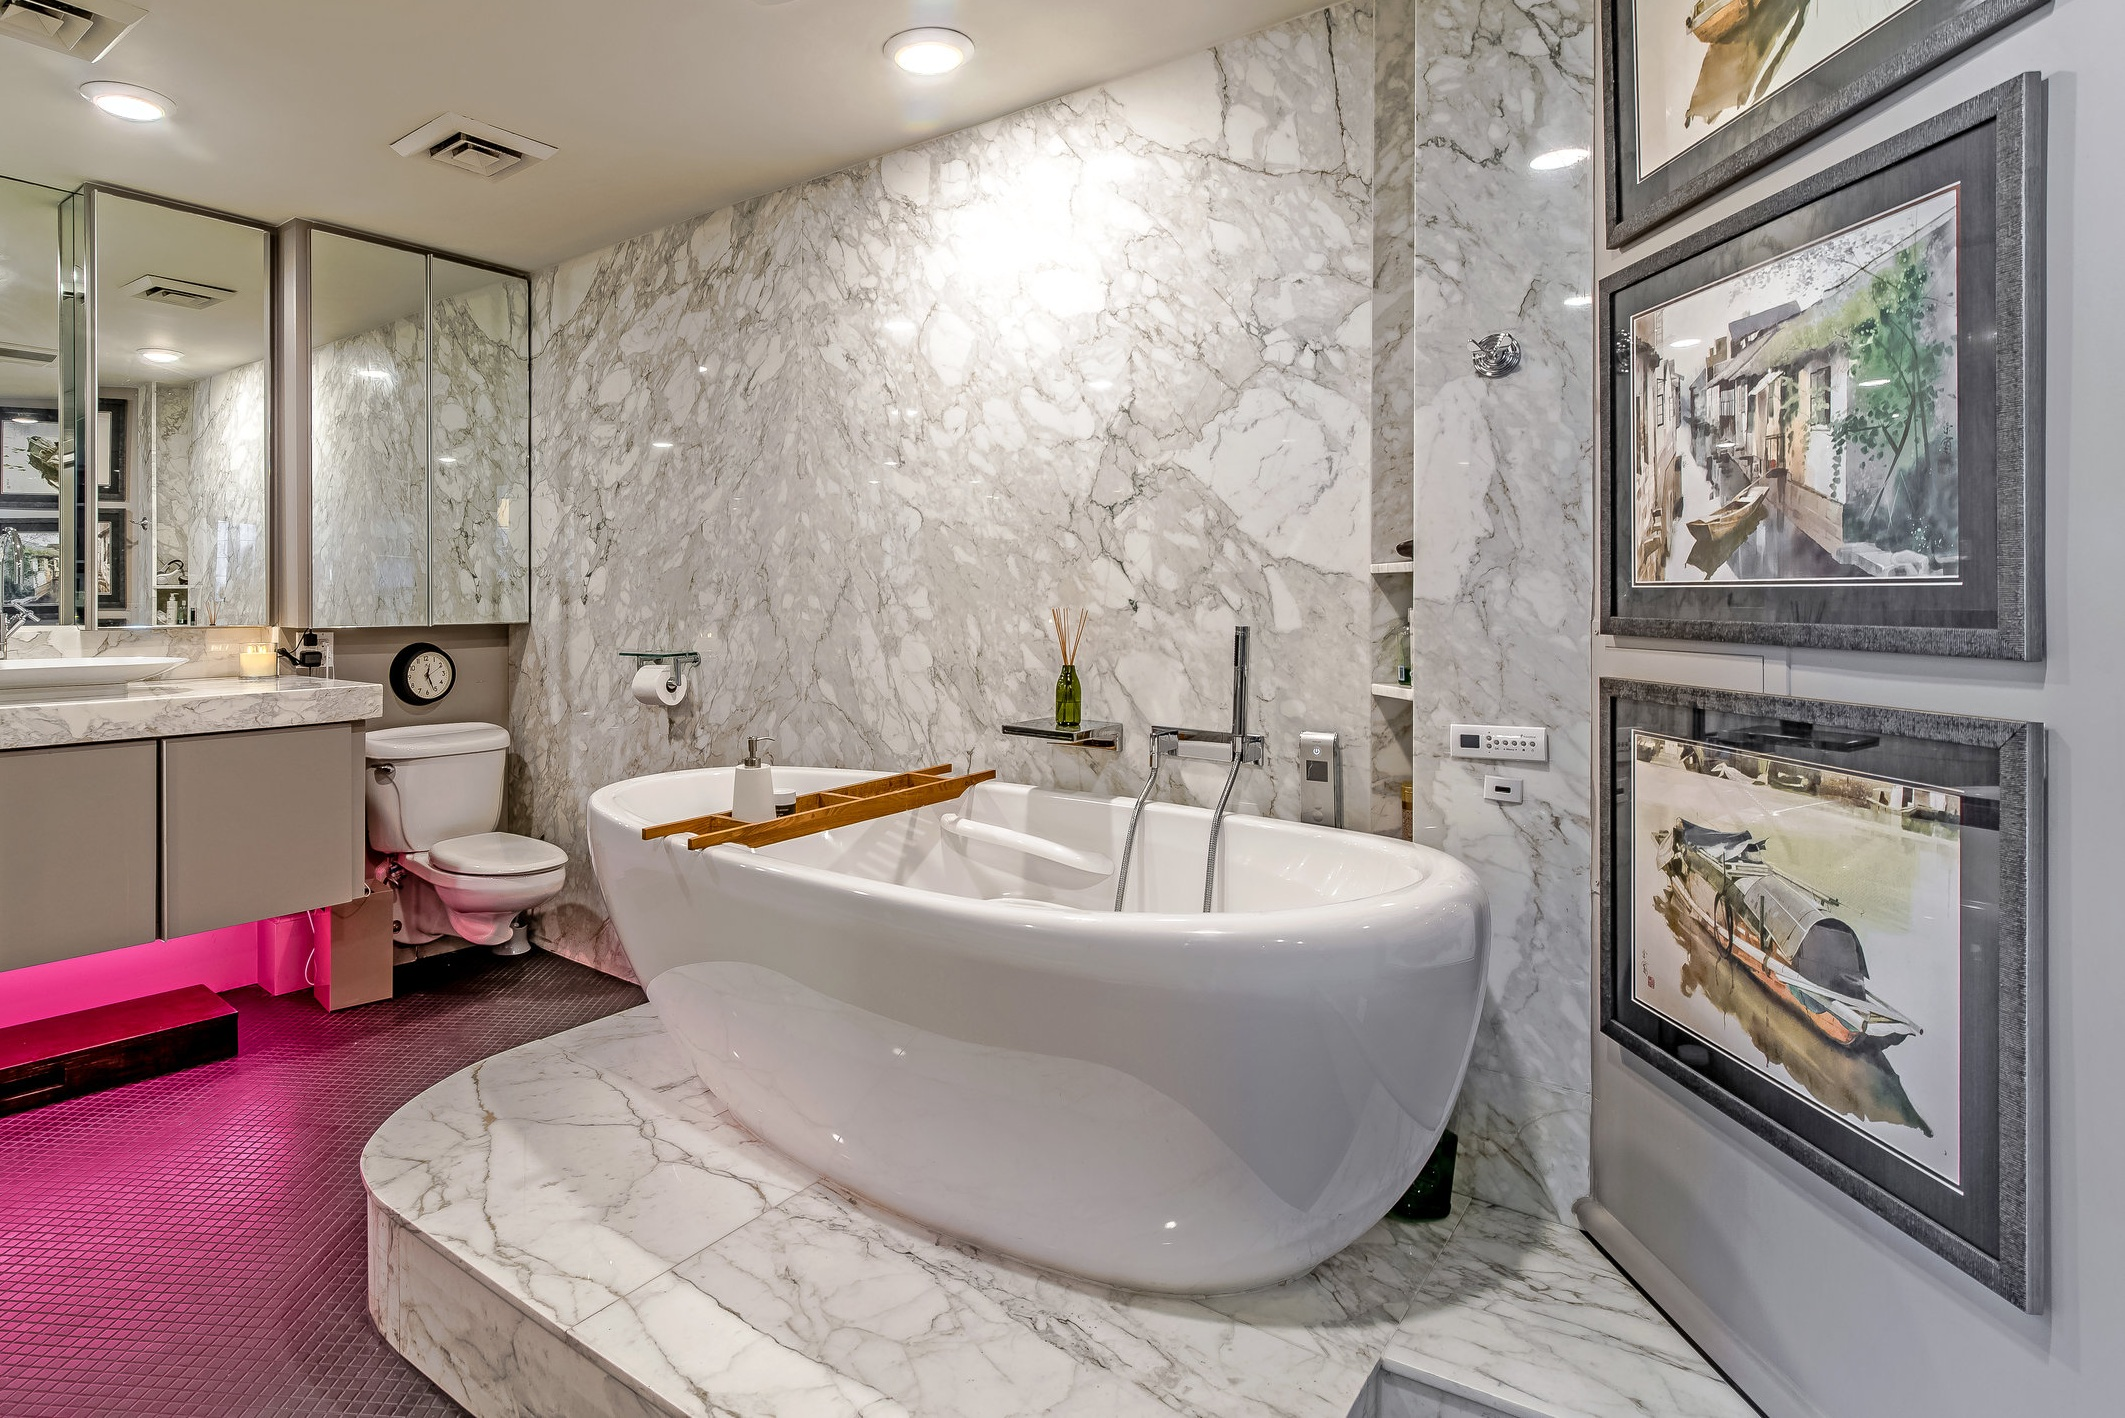 LUXURY+CONDO+MASTER+BATHROOM+TUB+HOUSTON+TEXAS+77056.jpg